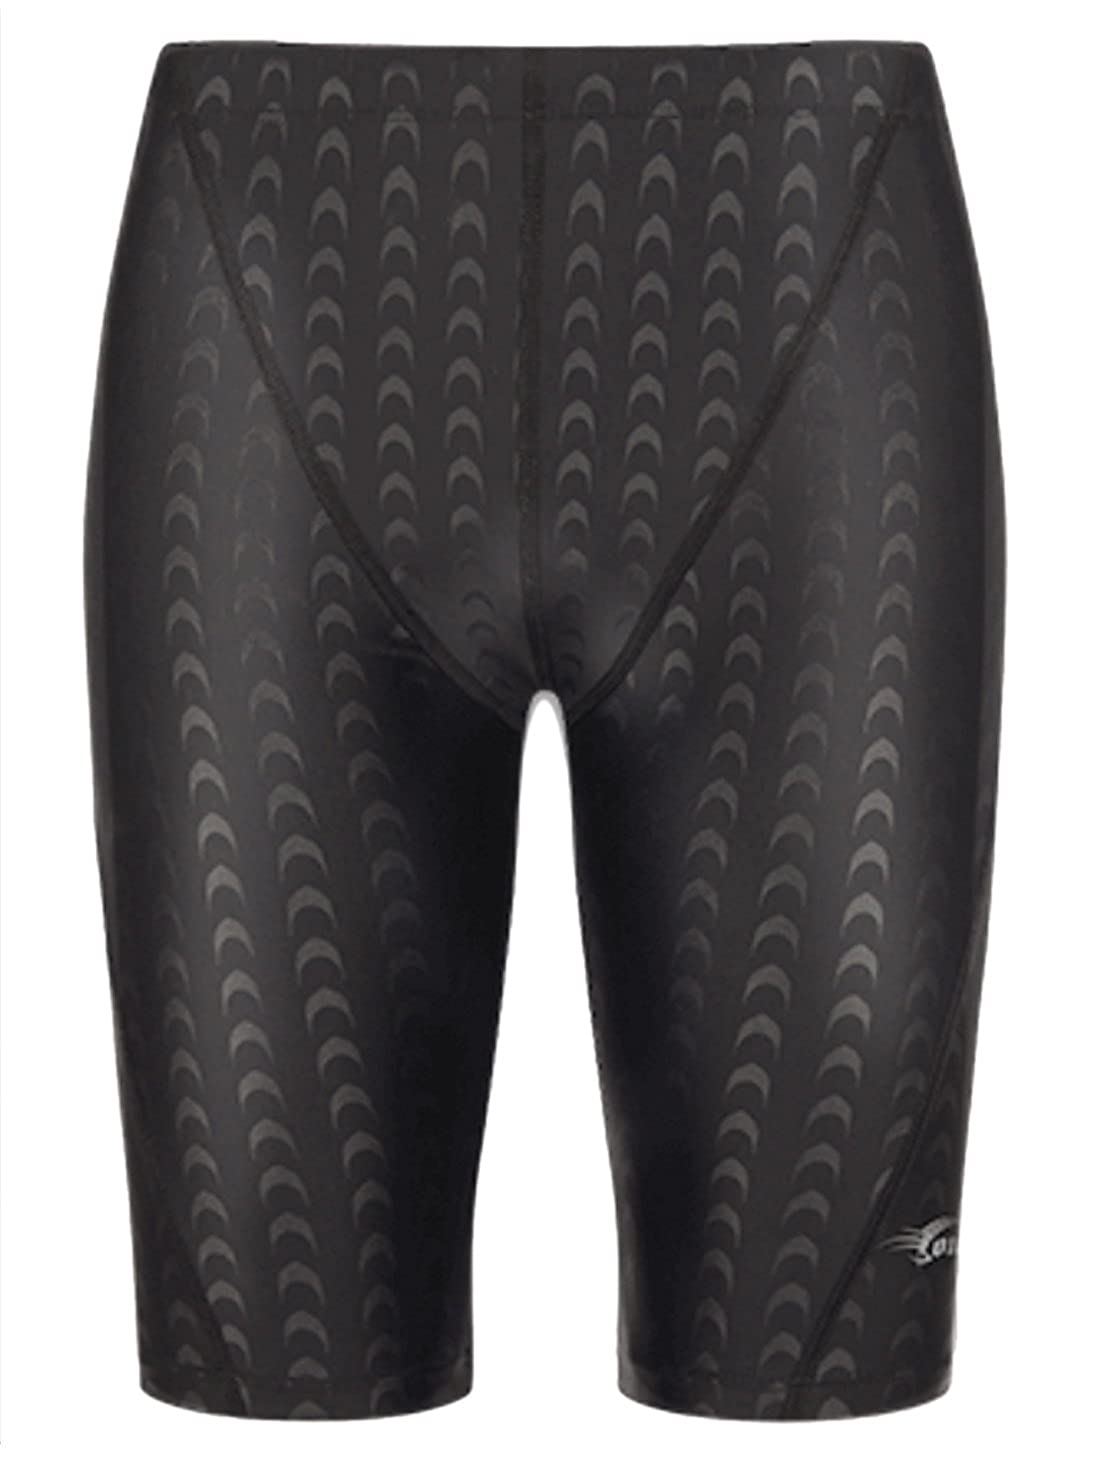 Panegy Mens Competition Swim Jammer Compression Rapid Short Solid Swimsuit